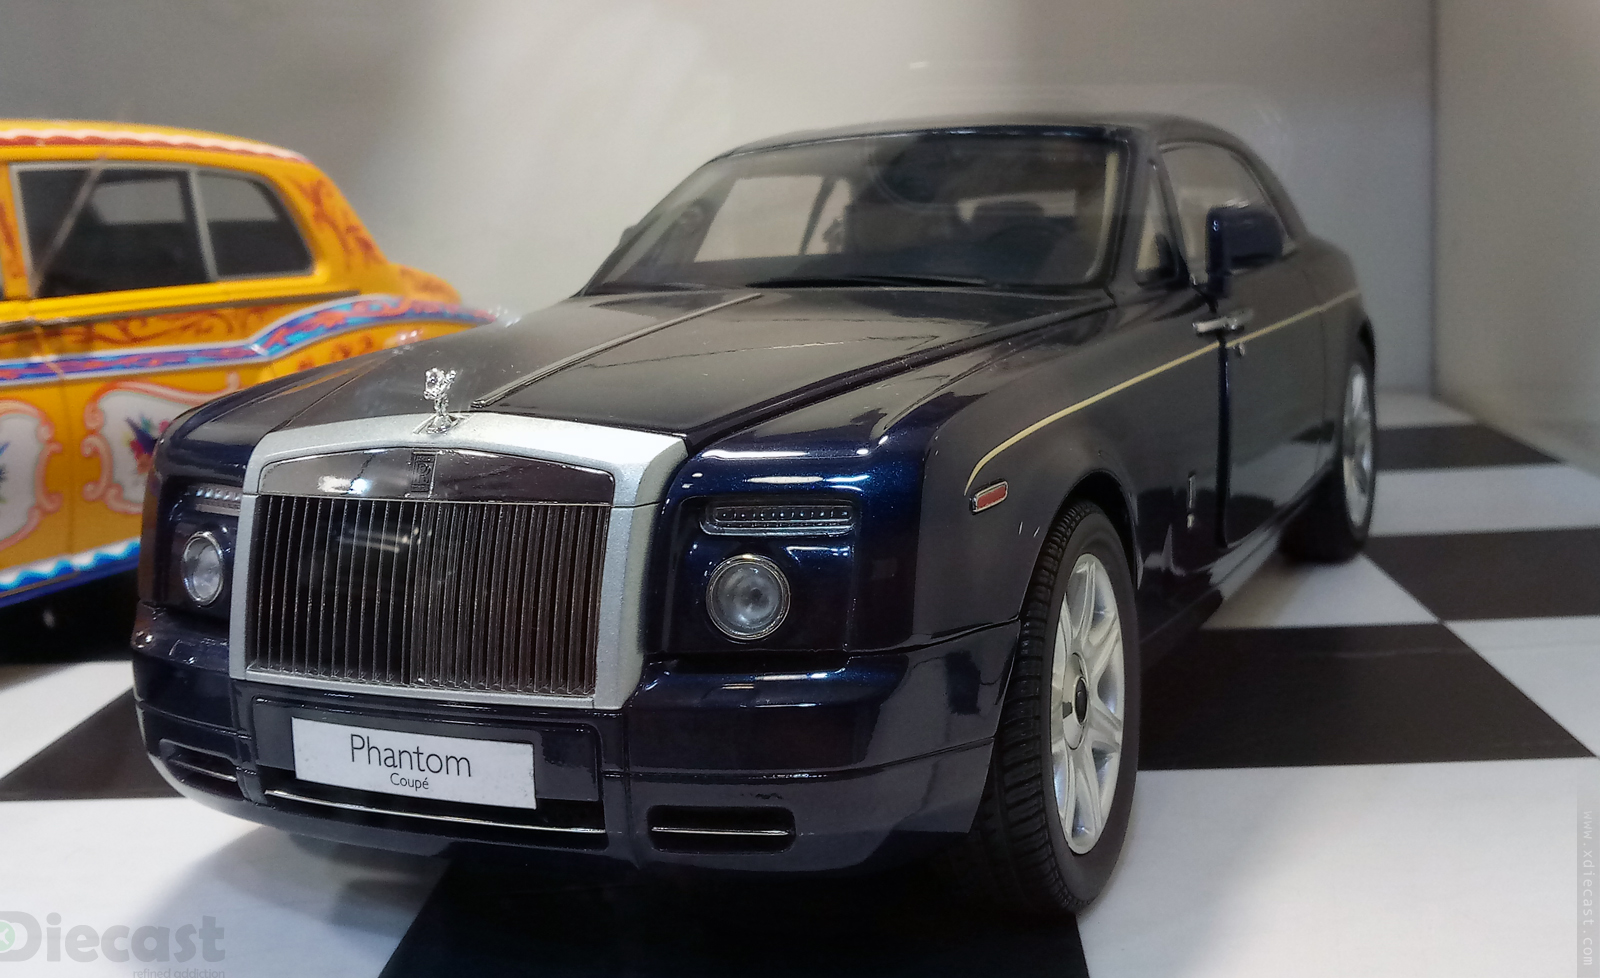 kyosho rolls royce phantom coupe on sale yes its real xdiecast. Black Bedroom Furniture Sets. Home Design Ideas